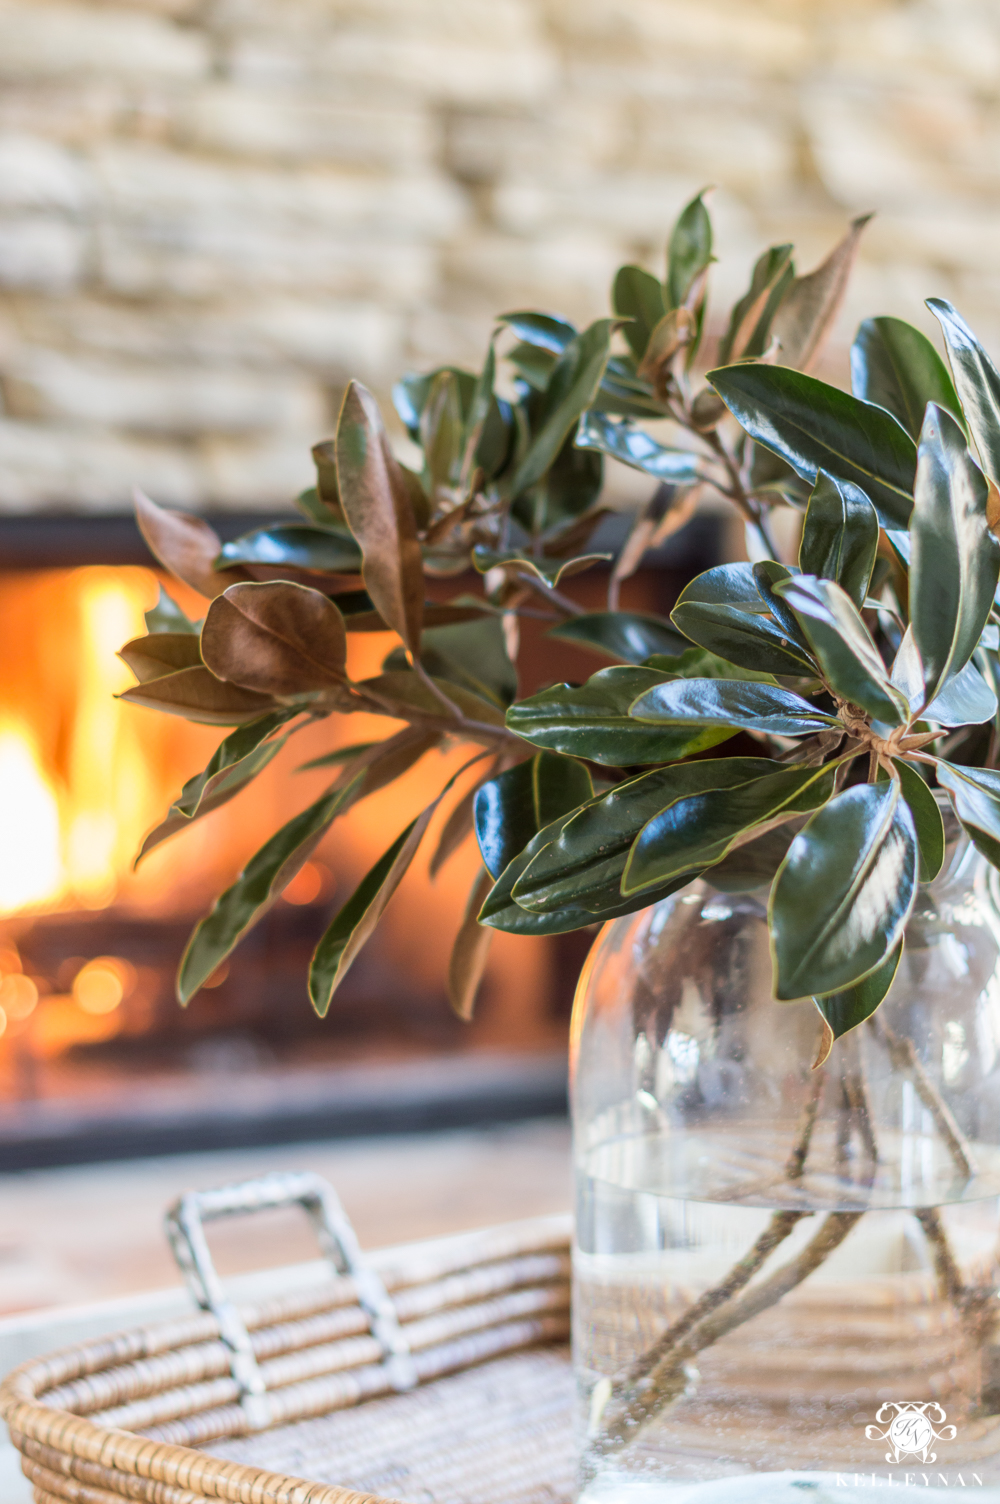 Bunch of magnolia leaves in a clear glass vase